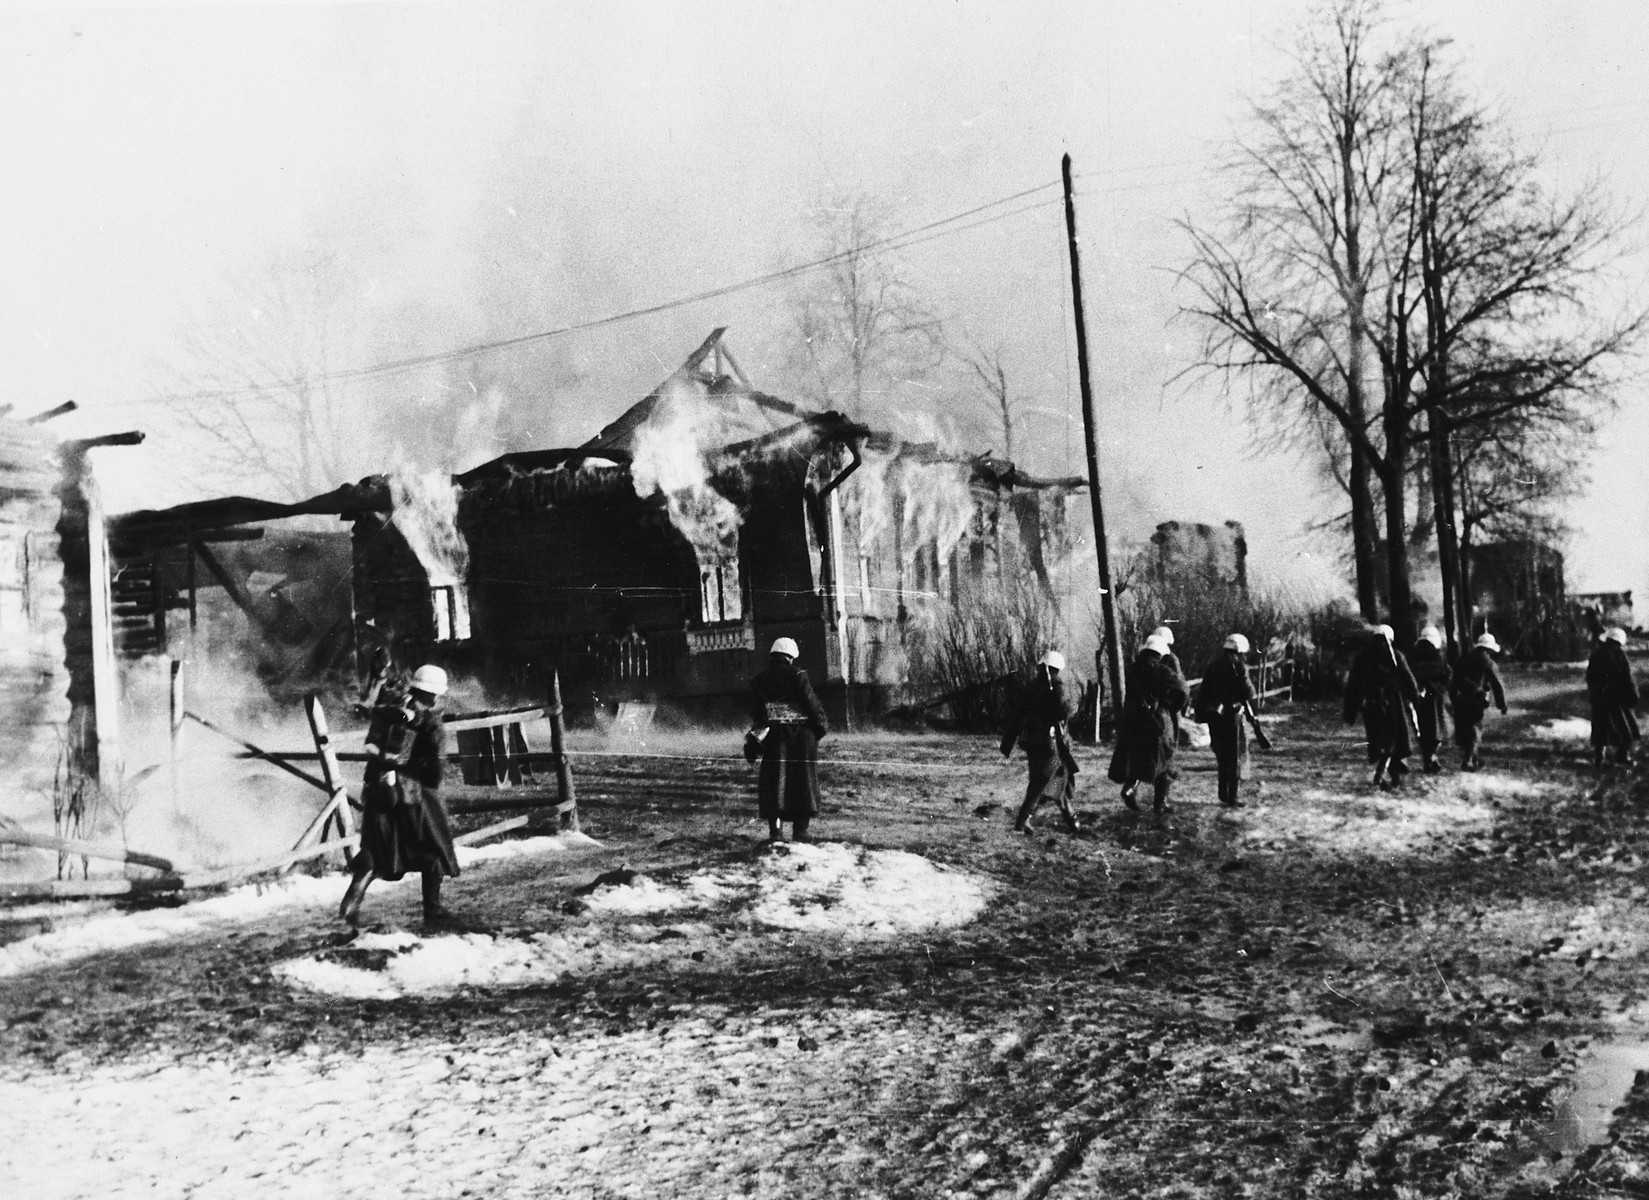 German soldiers carrying weapons walk down a street of a burning village [probably in the Soviet Union].